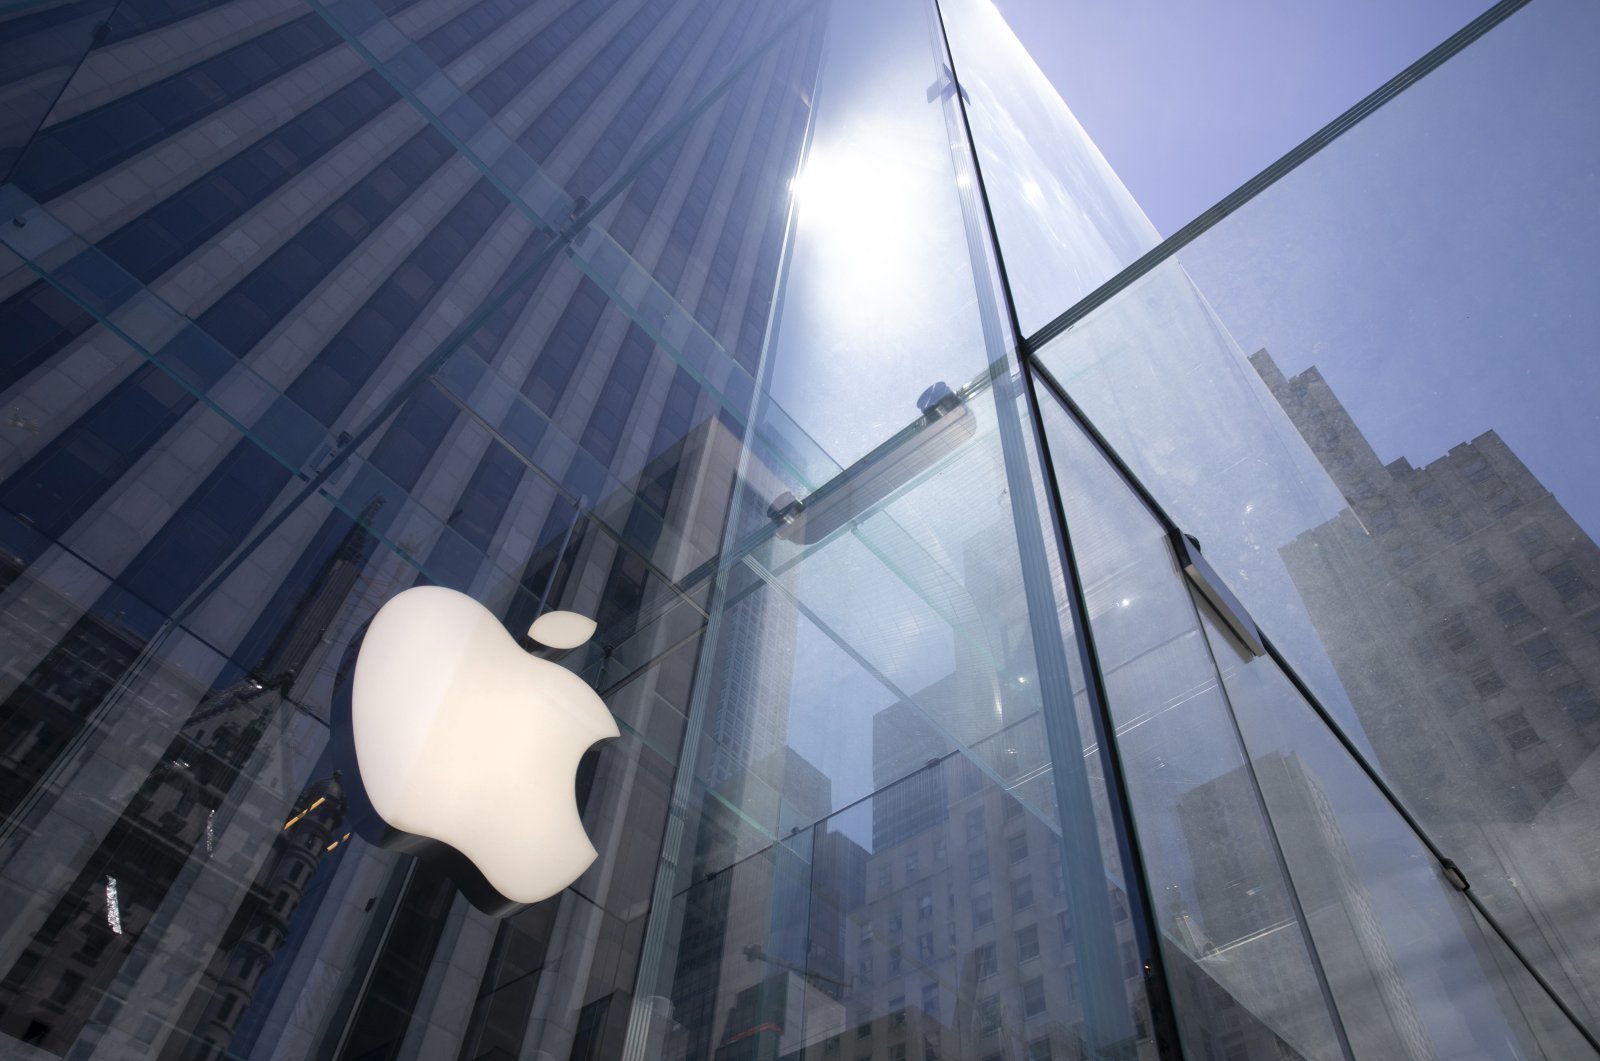 The sun is reflected on Apple's Fifth Avenue store in New York City, New York on June 16, 2020. (AP Photo)